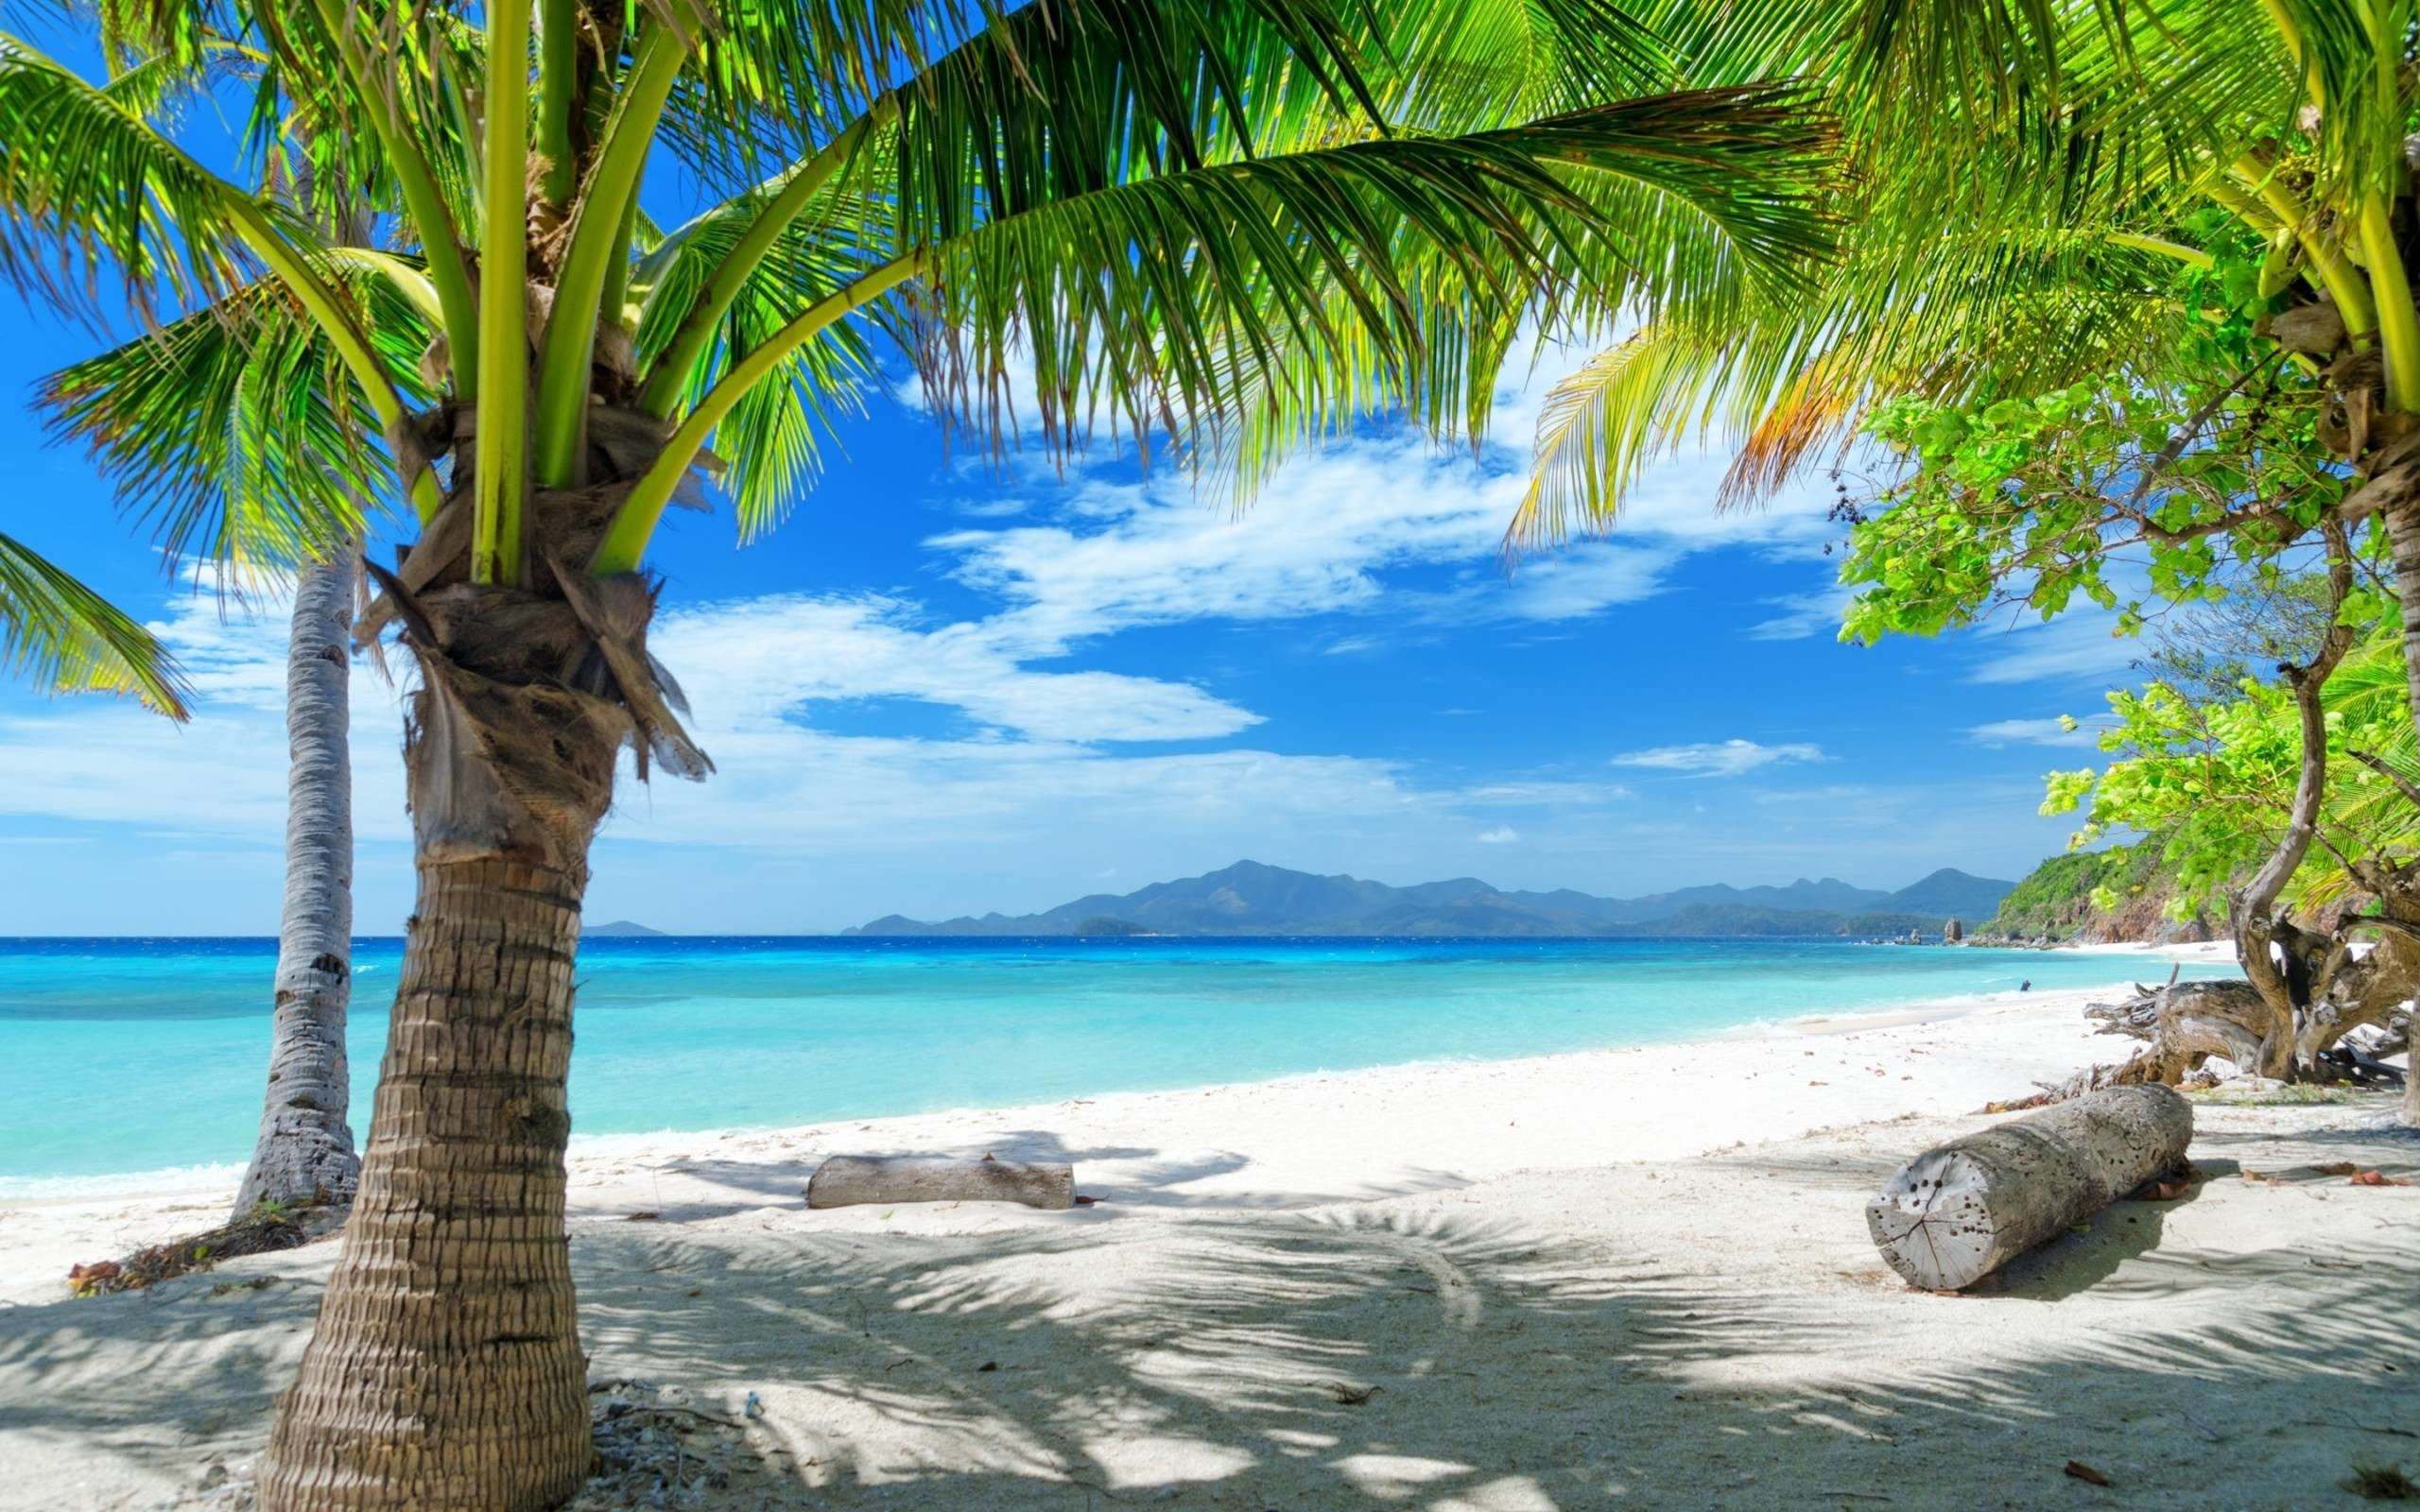 2560x1600 Tempting ocean beach with palm trees HD Desktop Wallpaper | HD .